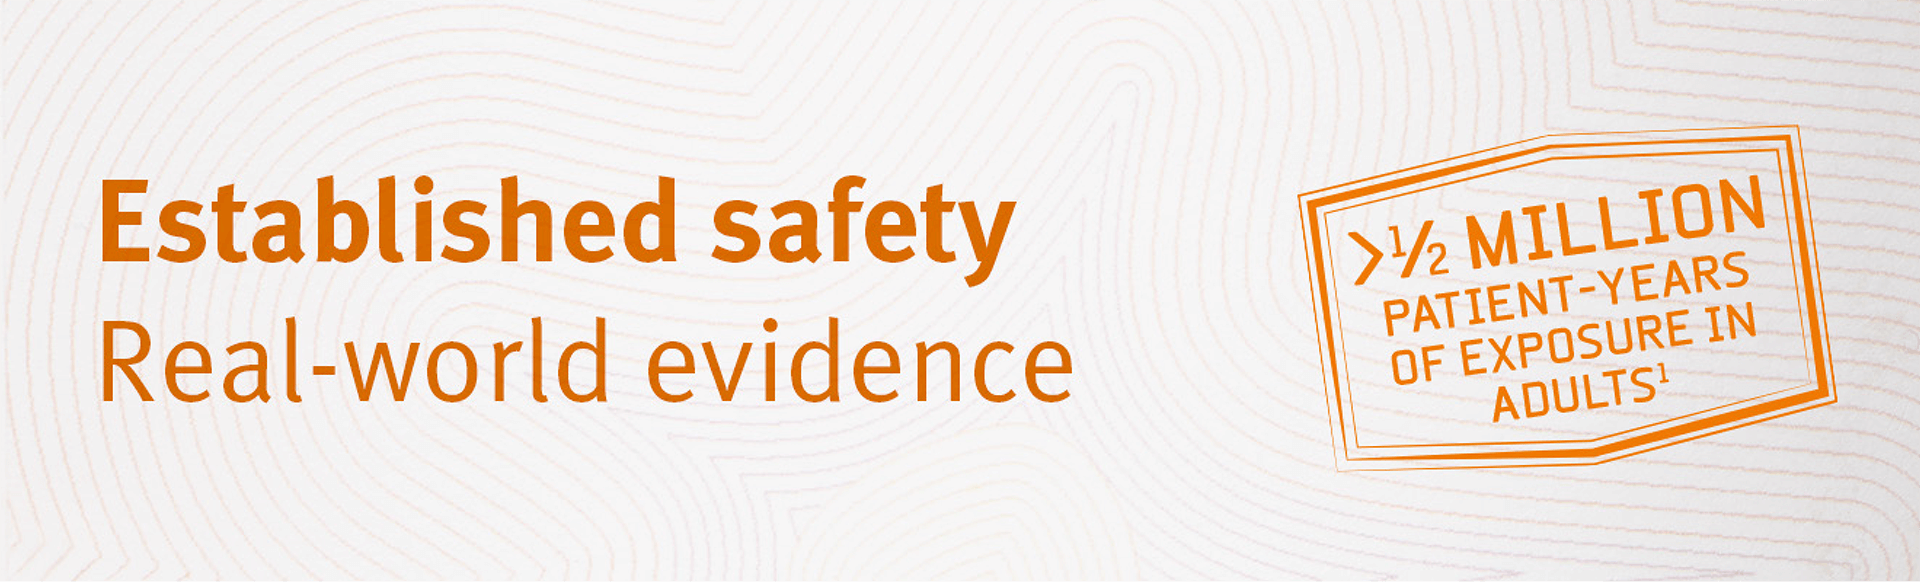 Top banner. Title reads 'established safety real-world evidence'. A stamp which says 'Over half a million patient-years of exposure in adults'